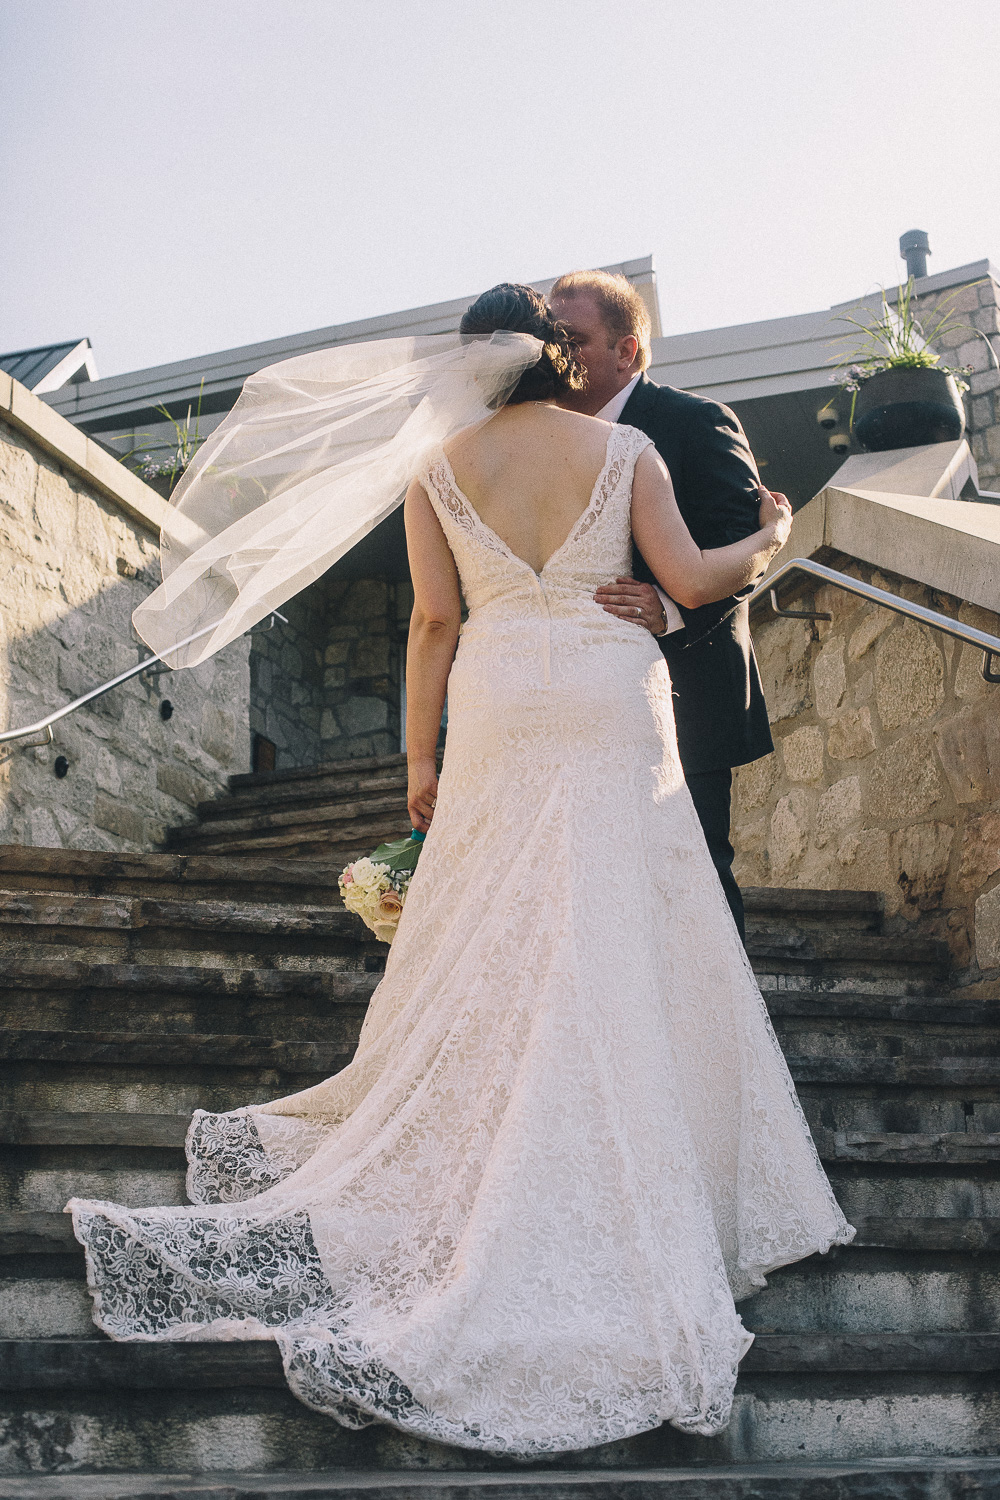 Bride with short hair stands to show her low back lace wedding gown and low-set veil while her groom holds her waist and kisses her cheek on the steps at the Cambridge Mill